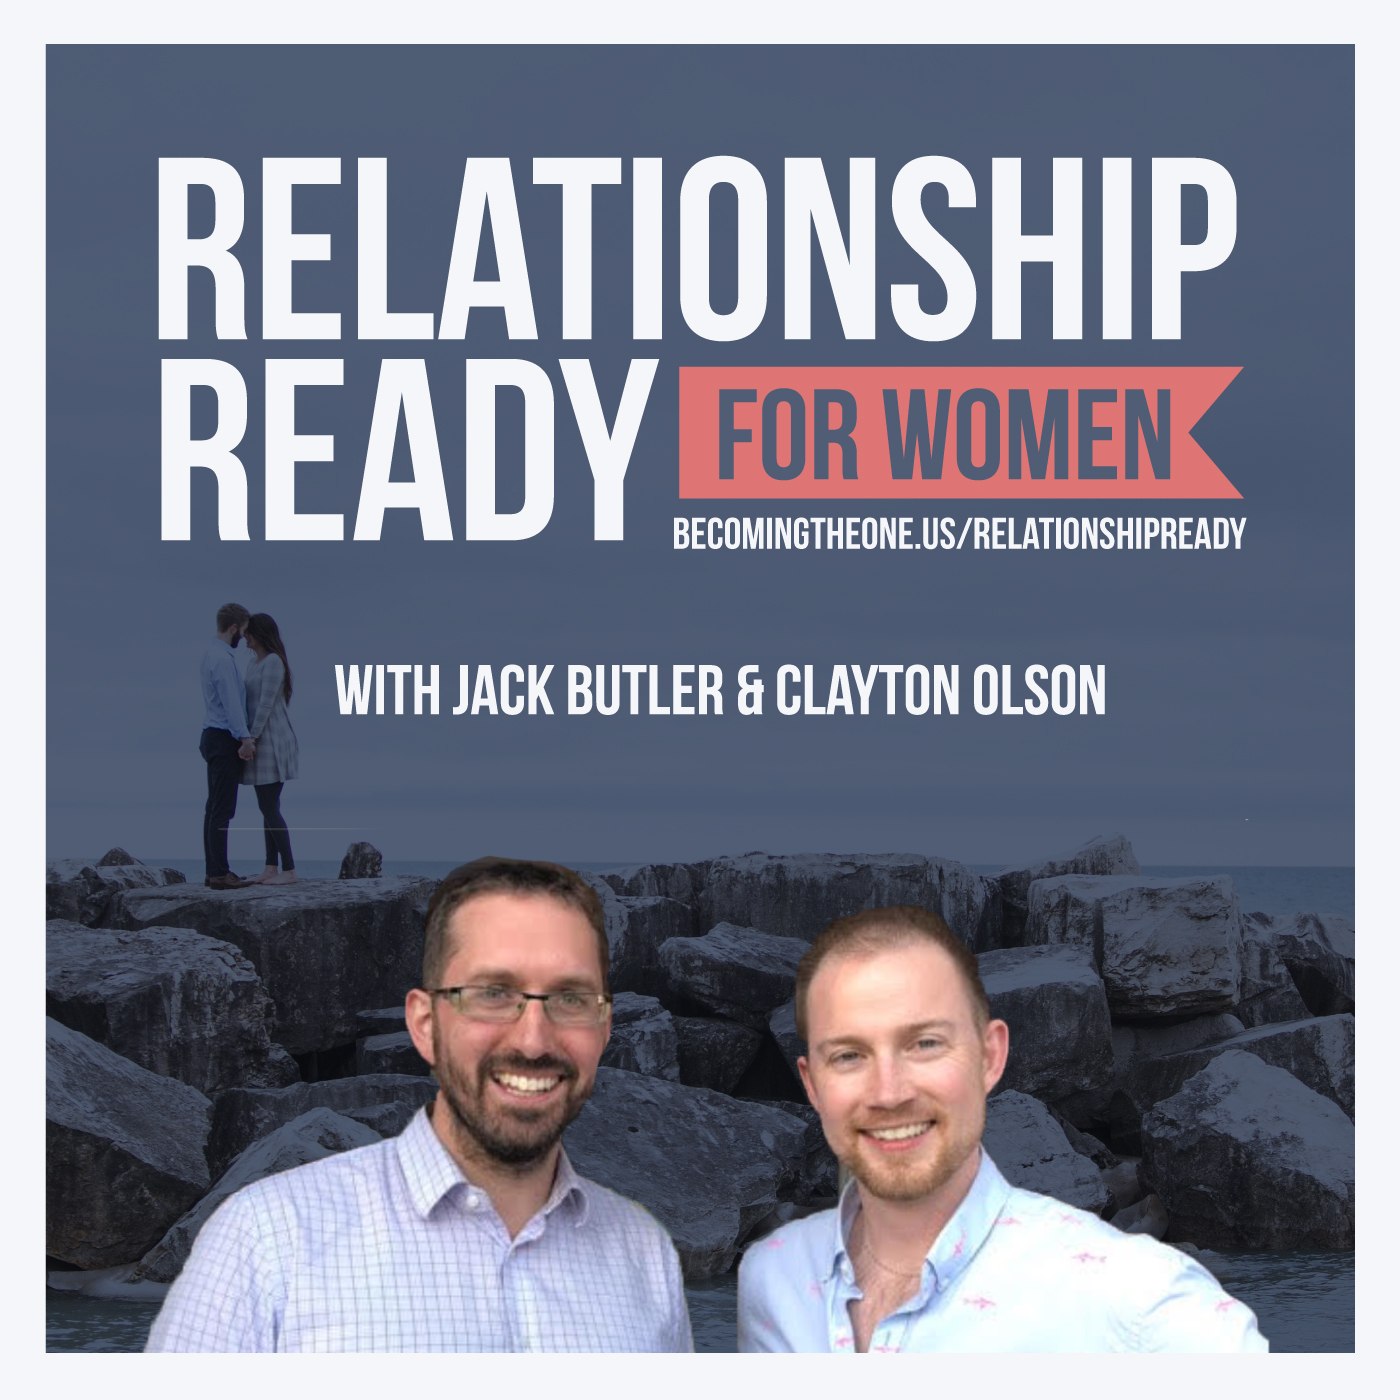 Relationship Ready - How To Make A Relationship Work By Taking Full Responsibility